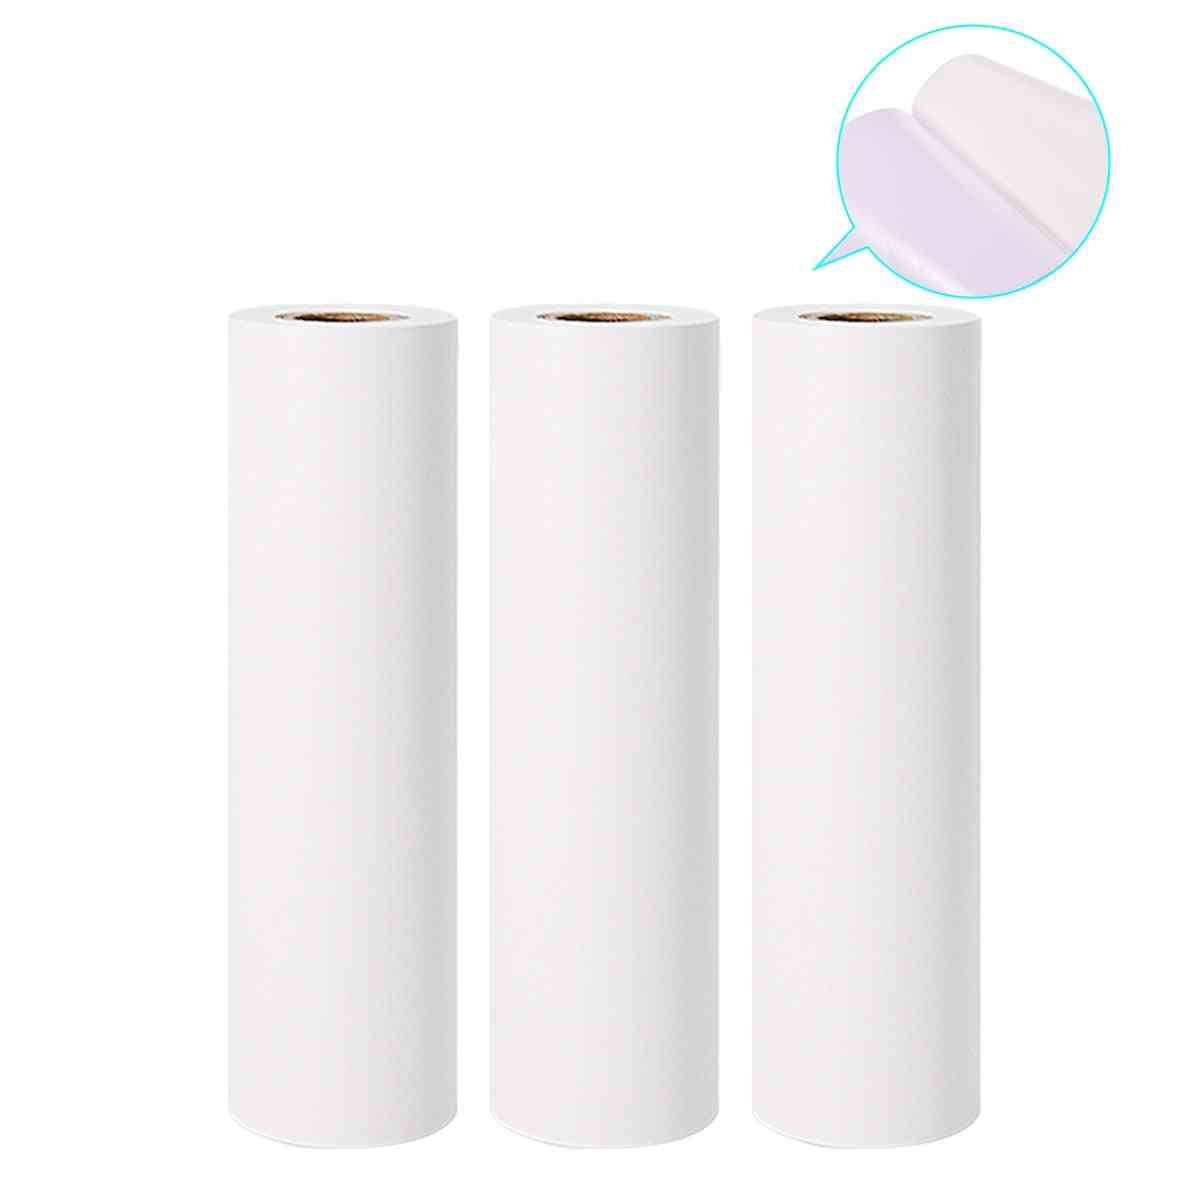 White Self-adhesive Thermal Paper Roll